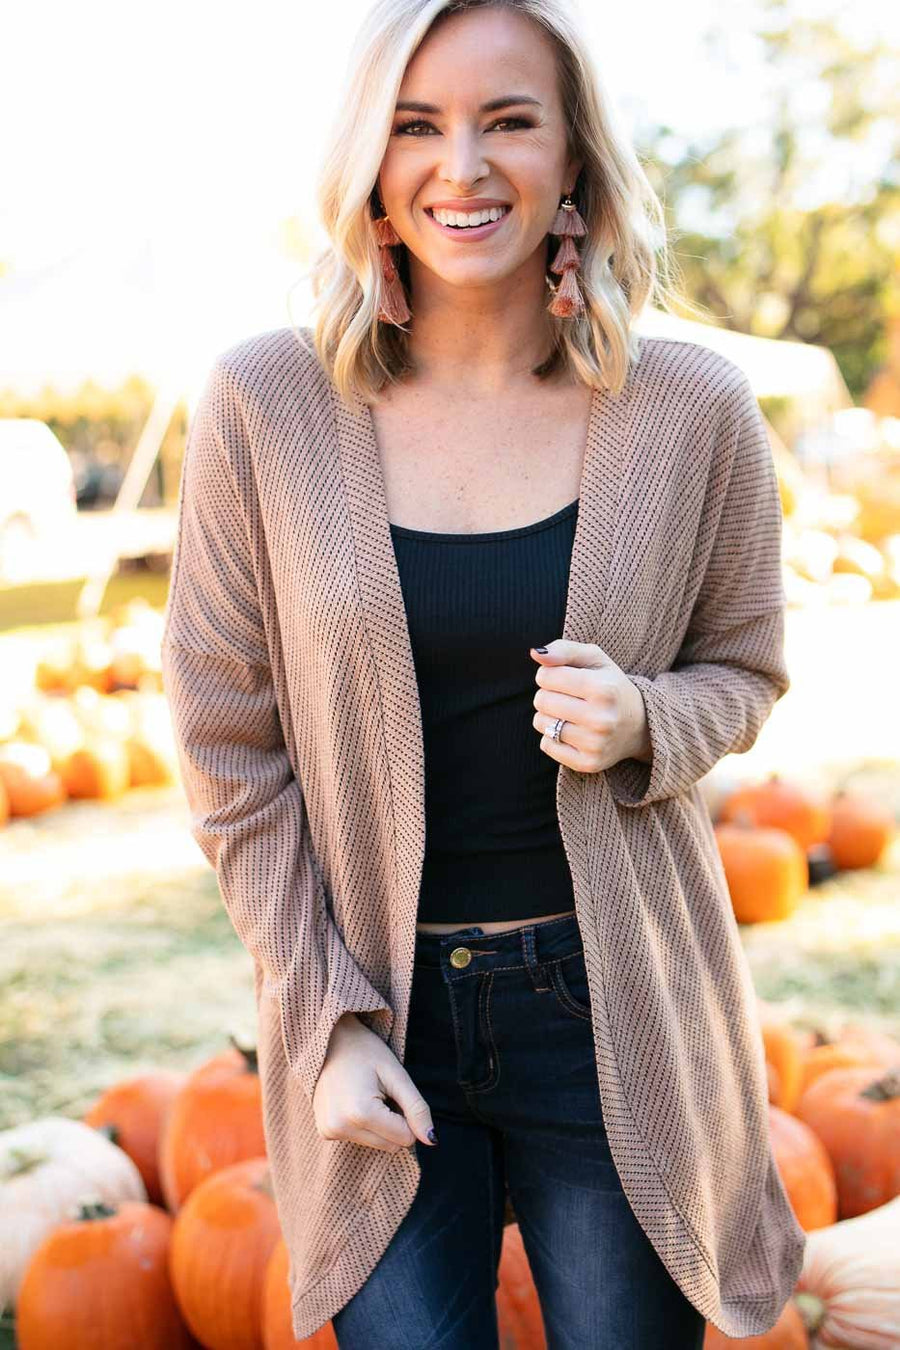 Tops Snicker-doodle Drop Shoulder Cardigan - Lotus Boutique